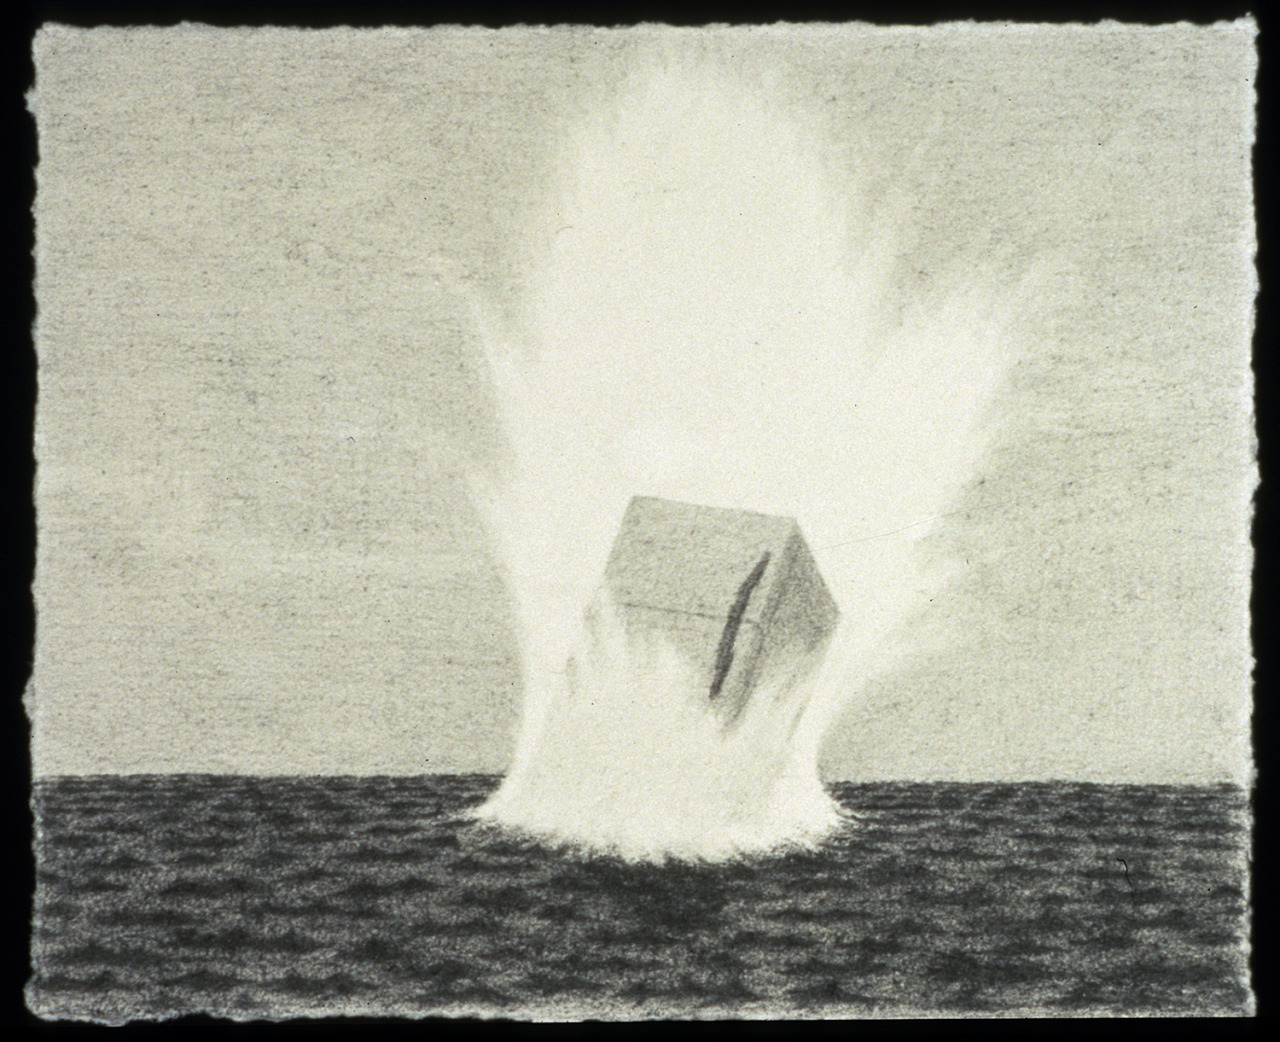 "Splash-down Graphite 3"" x 4"" 2004 Scott Espeseth"